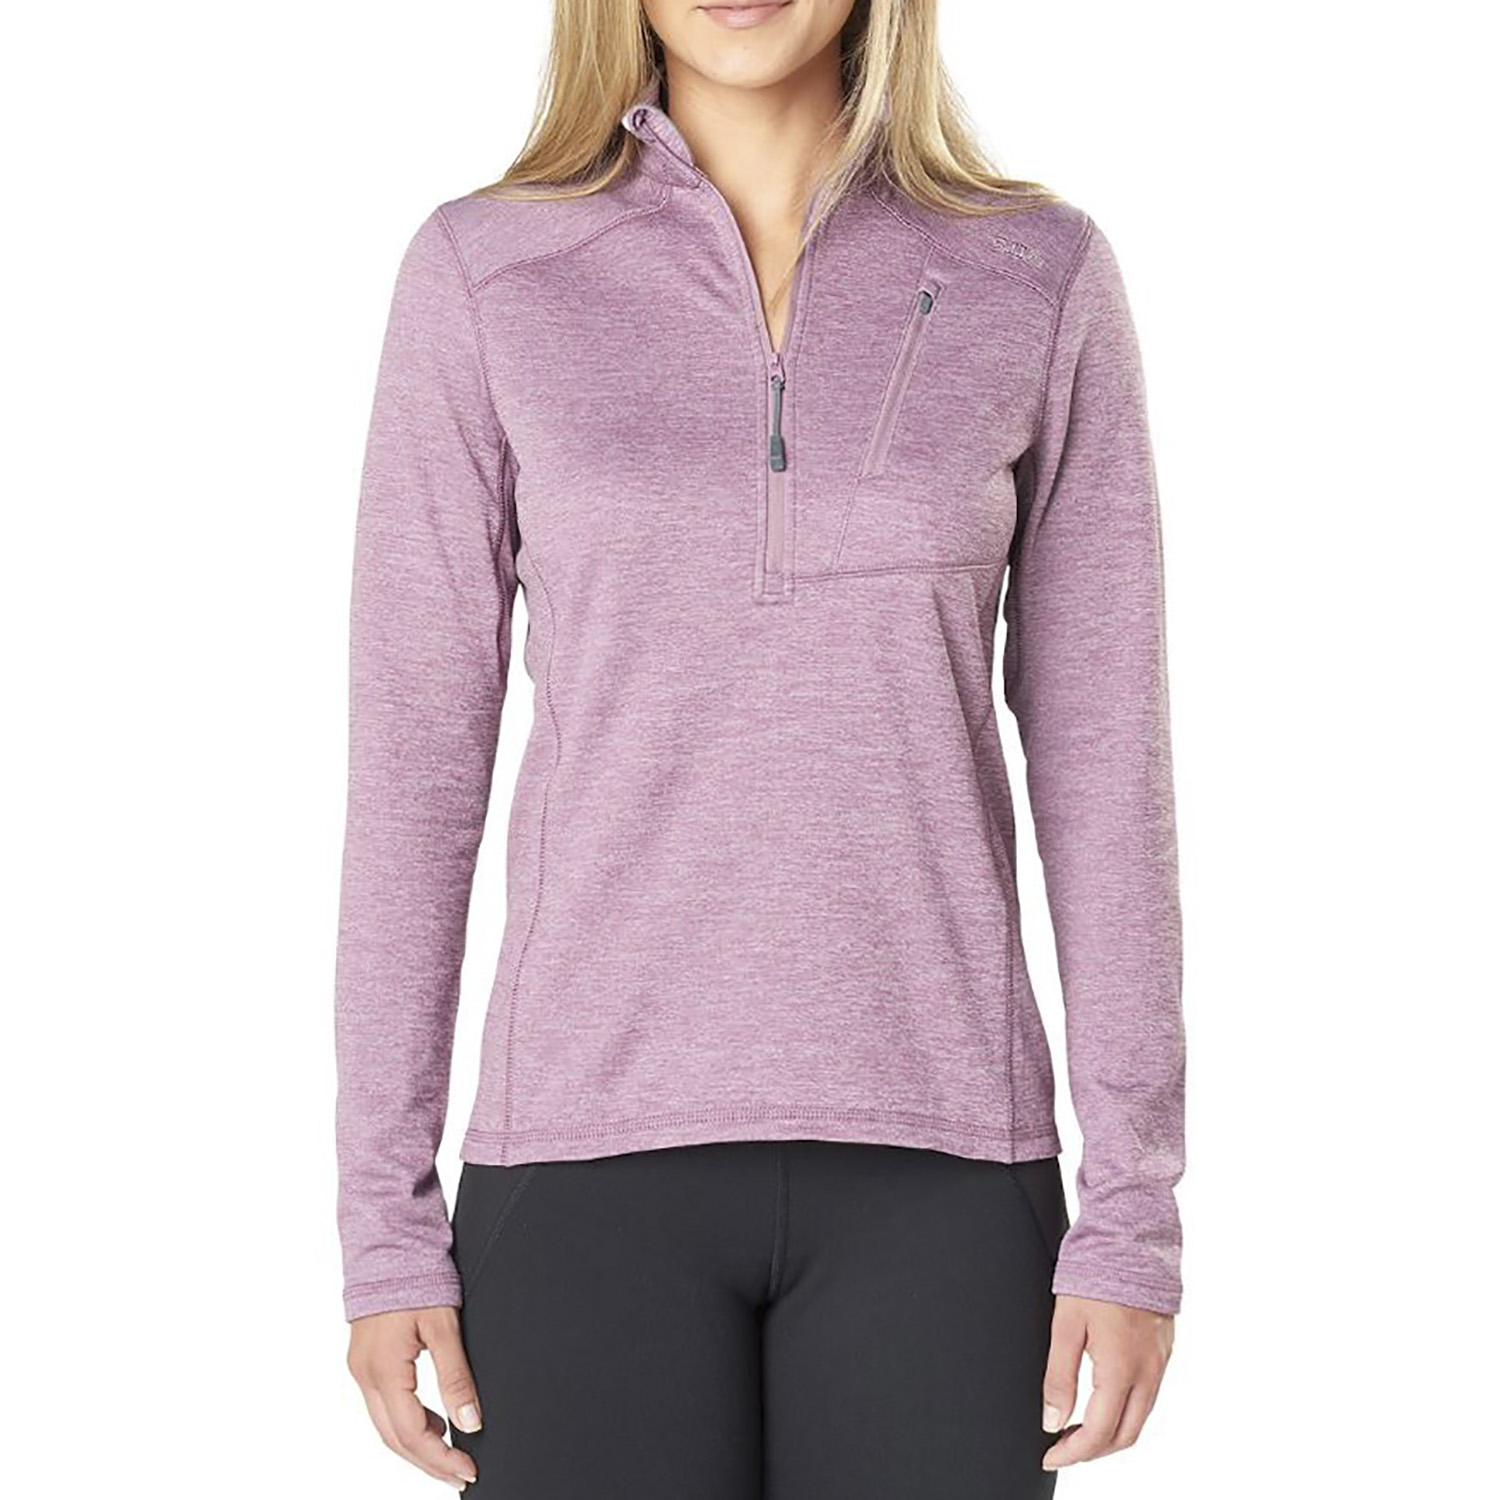 5.11 Tactical Women's Half Zip Fleece